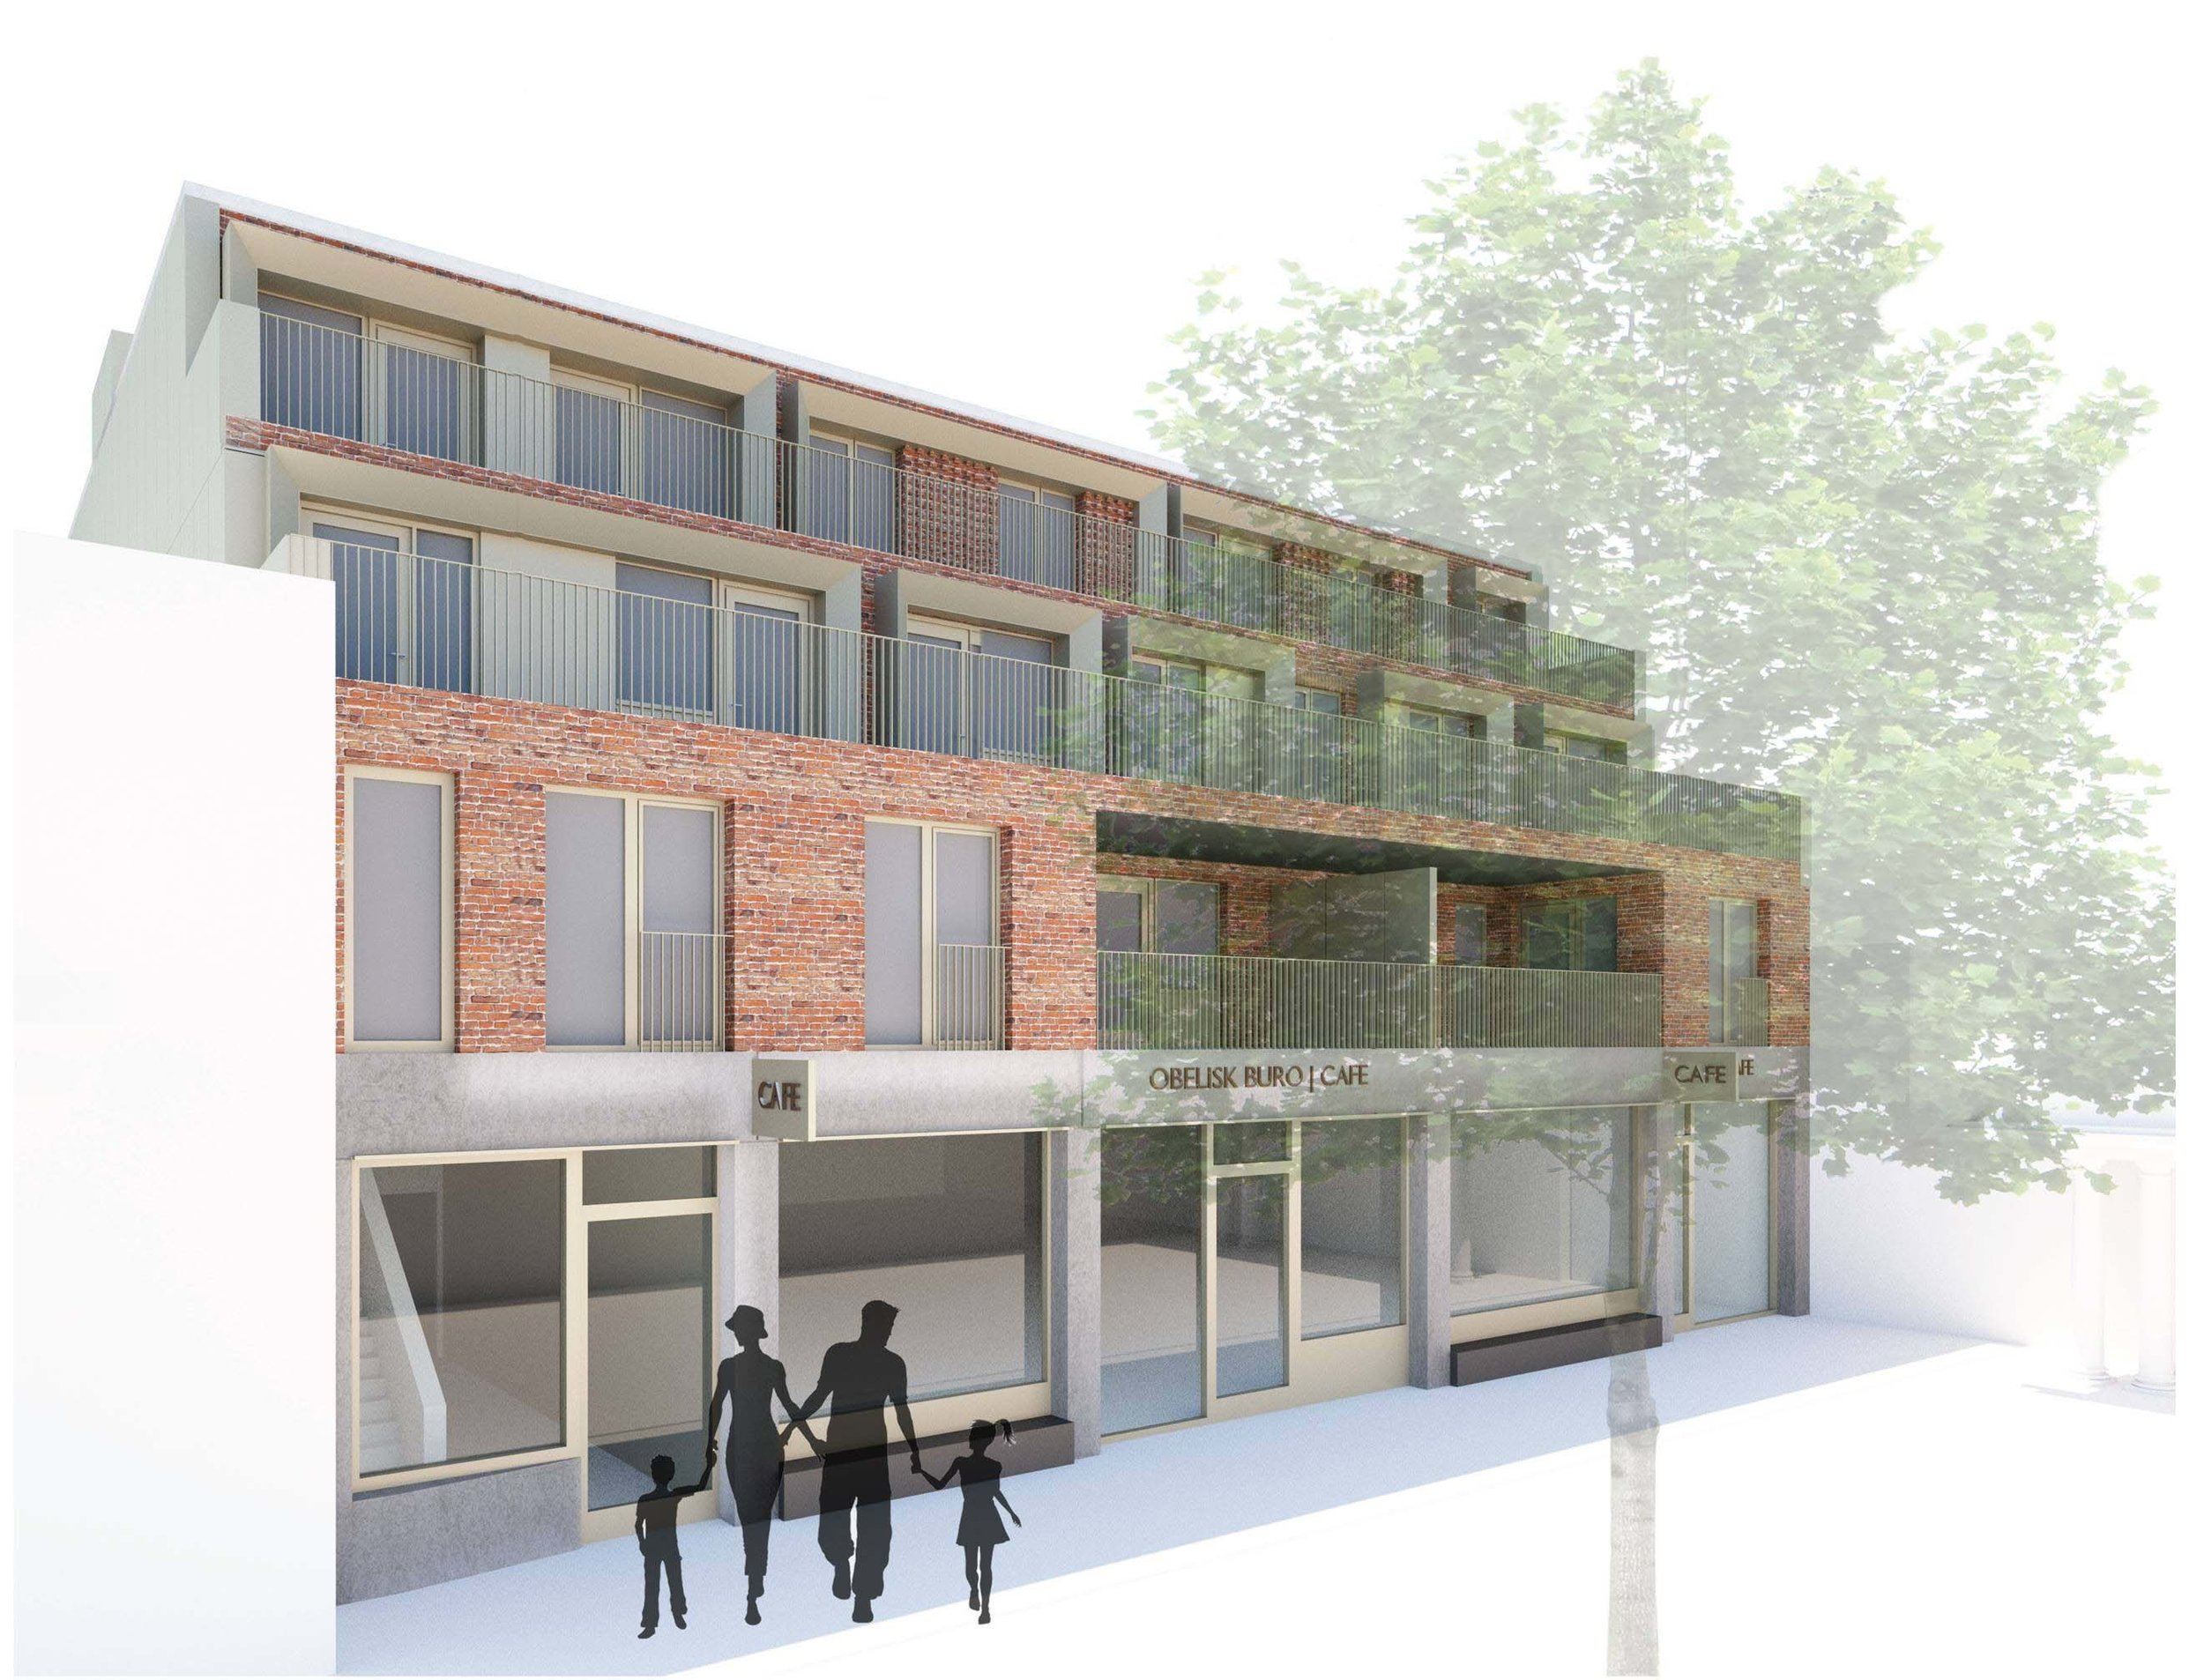 Render of the proposed building: Kristofer Adelaide Architecture